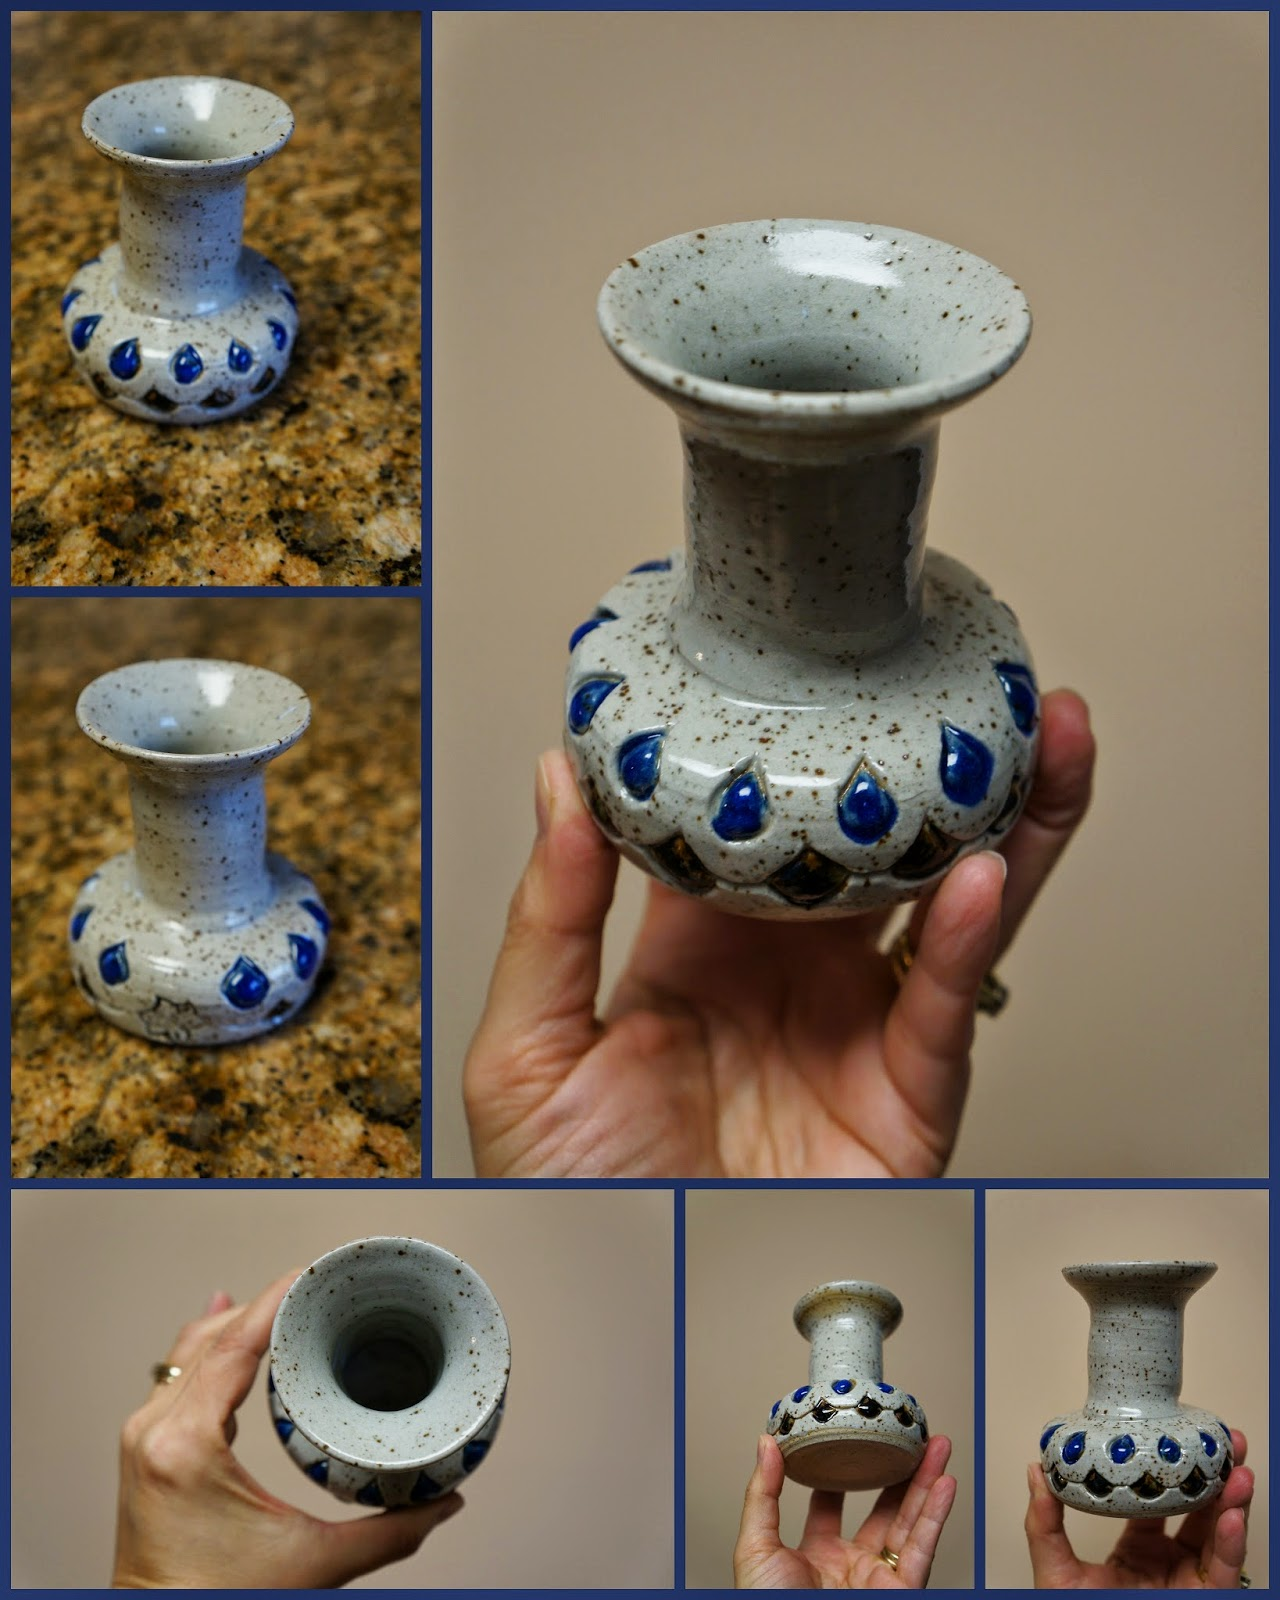 Unique handmade pottery / stoneware double-walled thrown vase with faux jewel design.